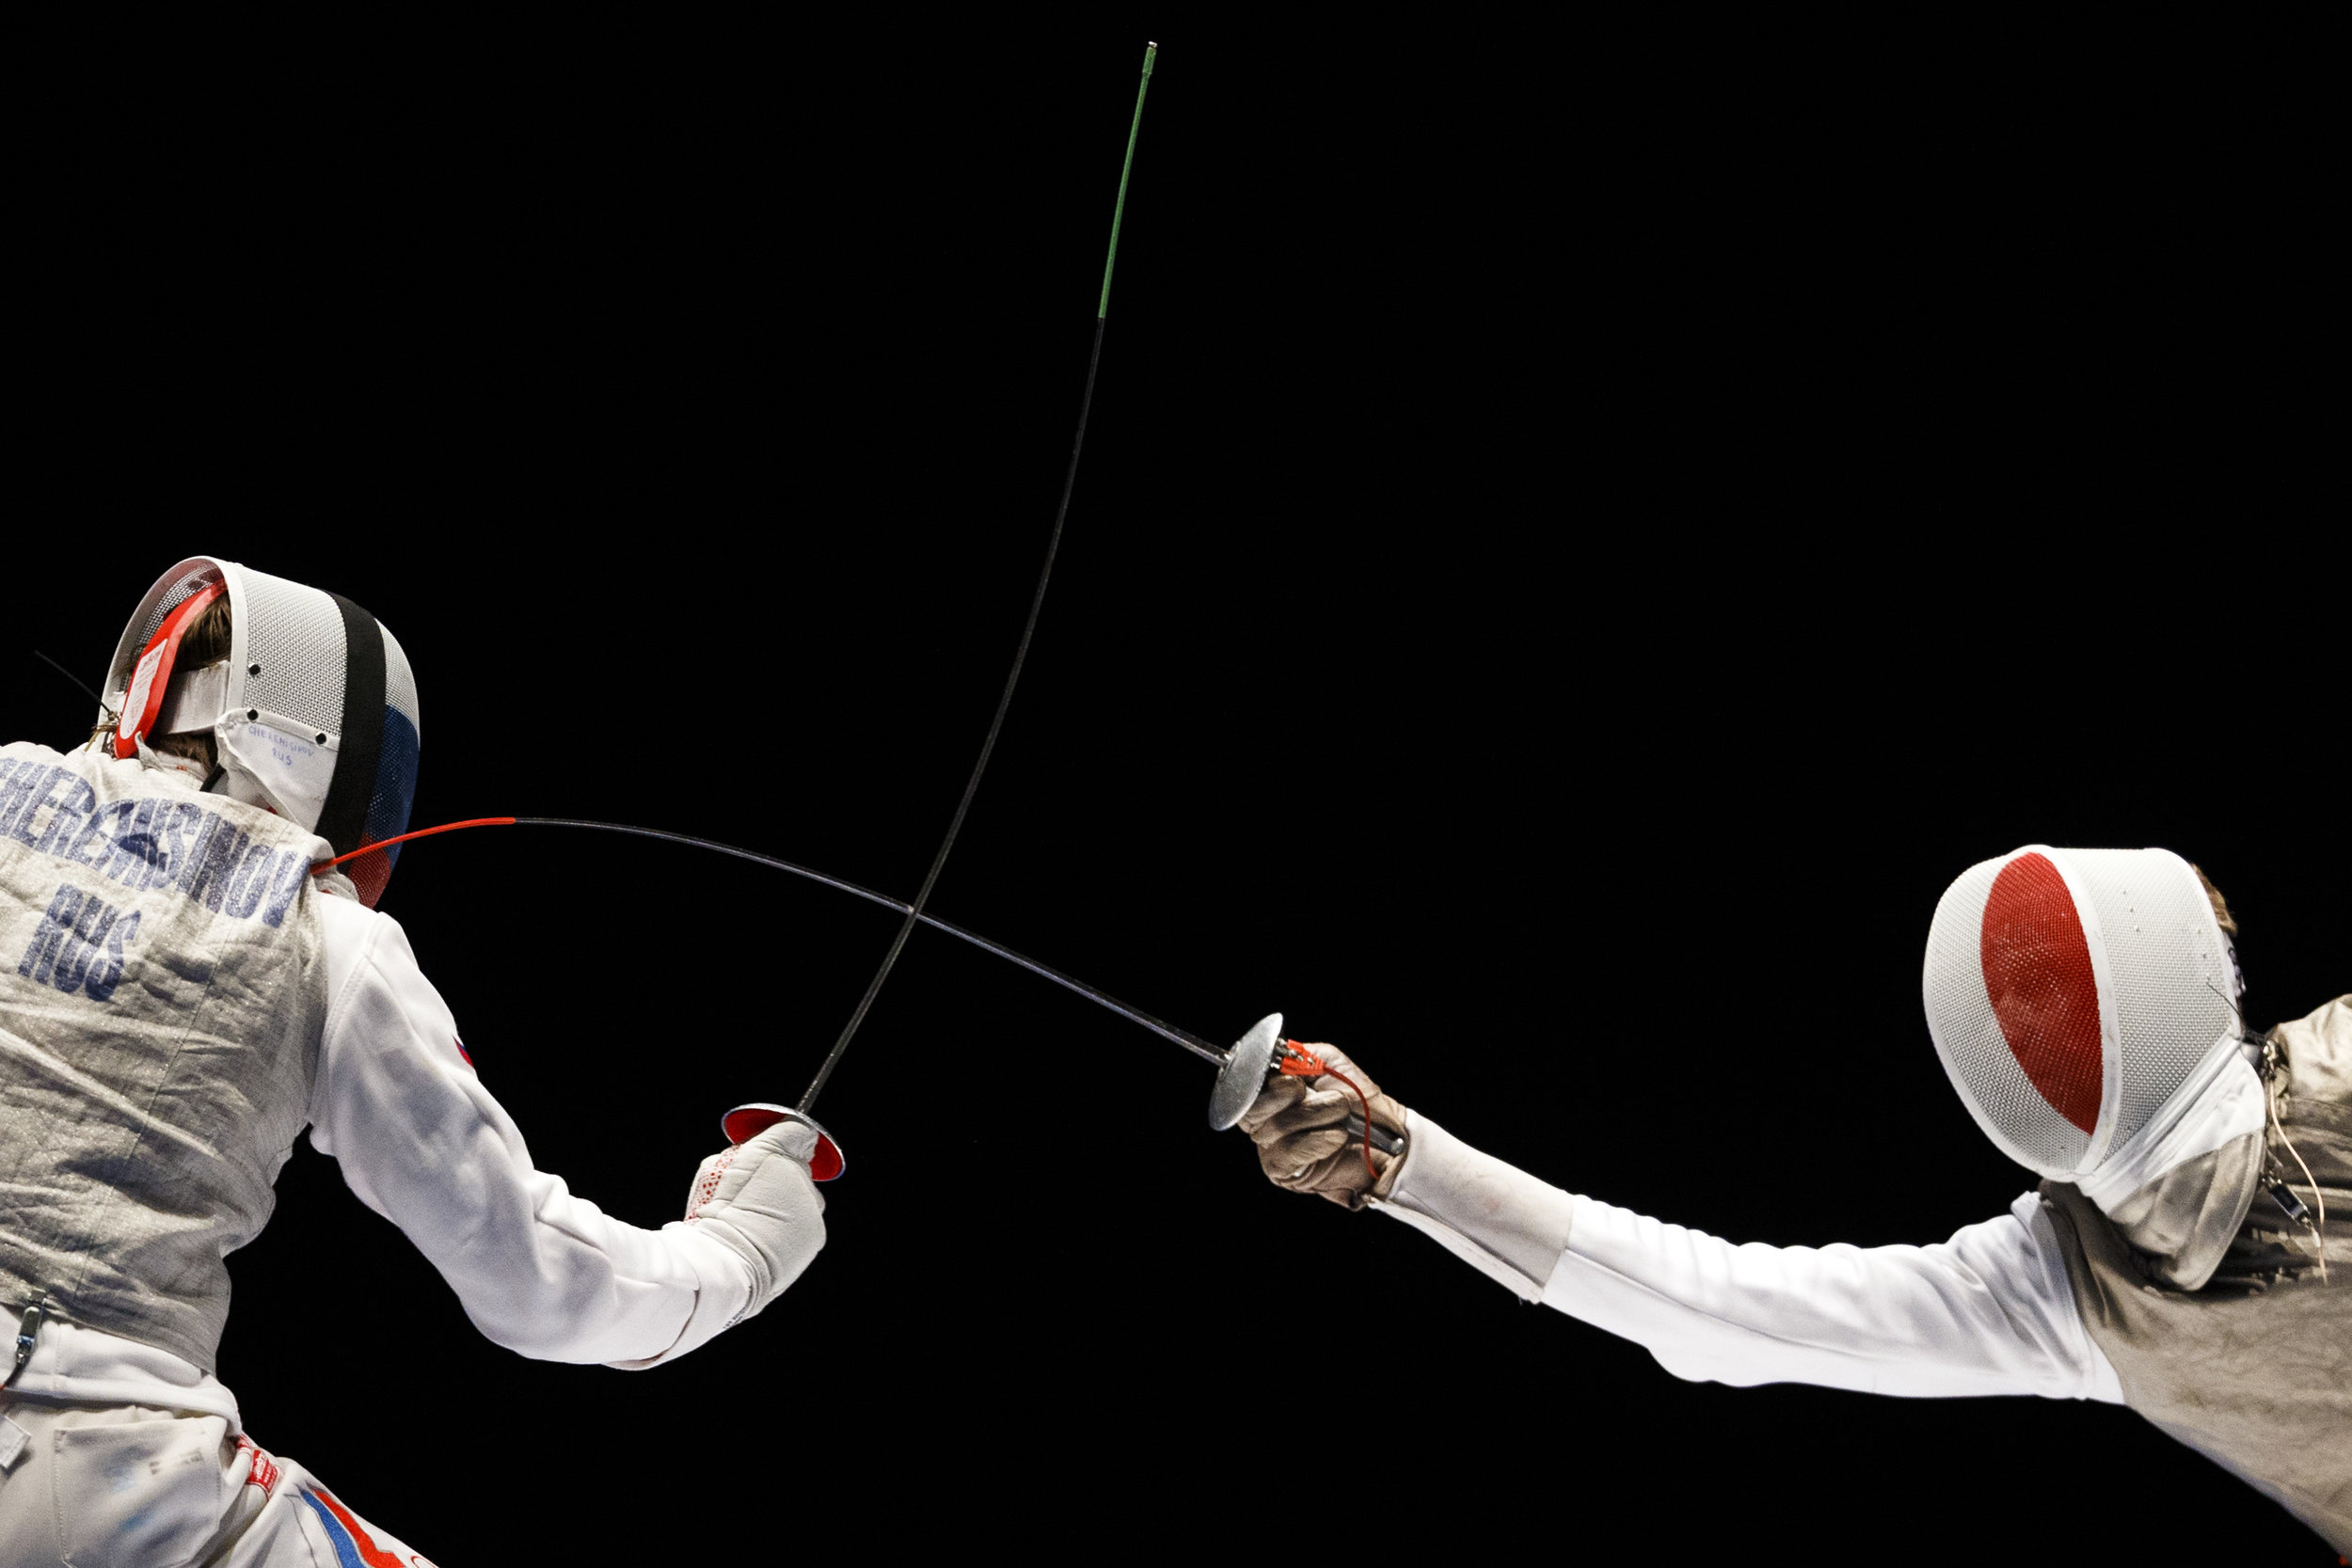 Arthur Akhmatkhuzin from Russia from Russia, left, reacts next to Julien Mertine, right,  from France during the men's team foil final at the European Fencing Championships in Montreux, Switzerland, Tuesday, June 9, 2015. (KEYSTONE/Valentin Flauraud)